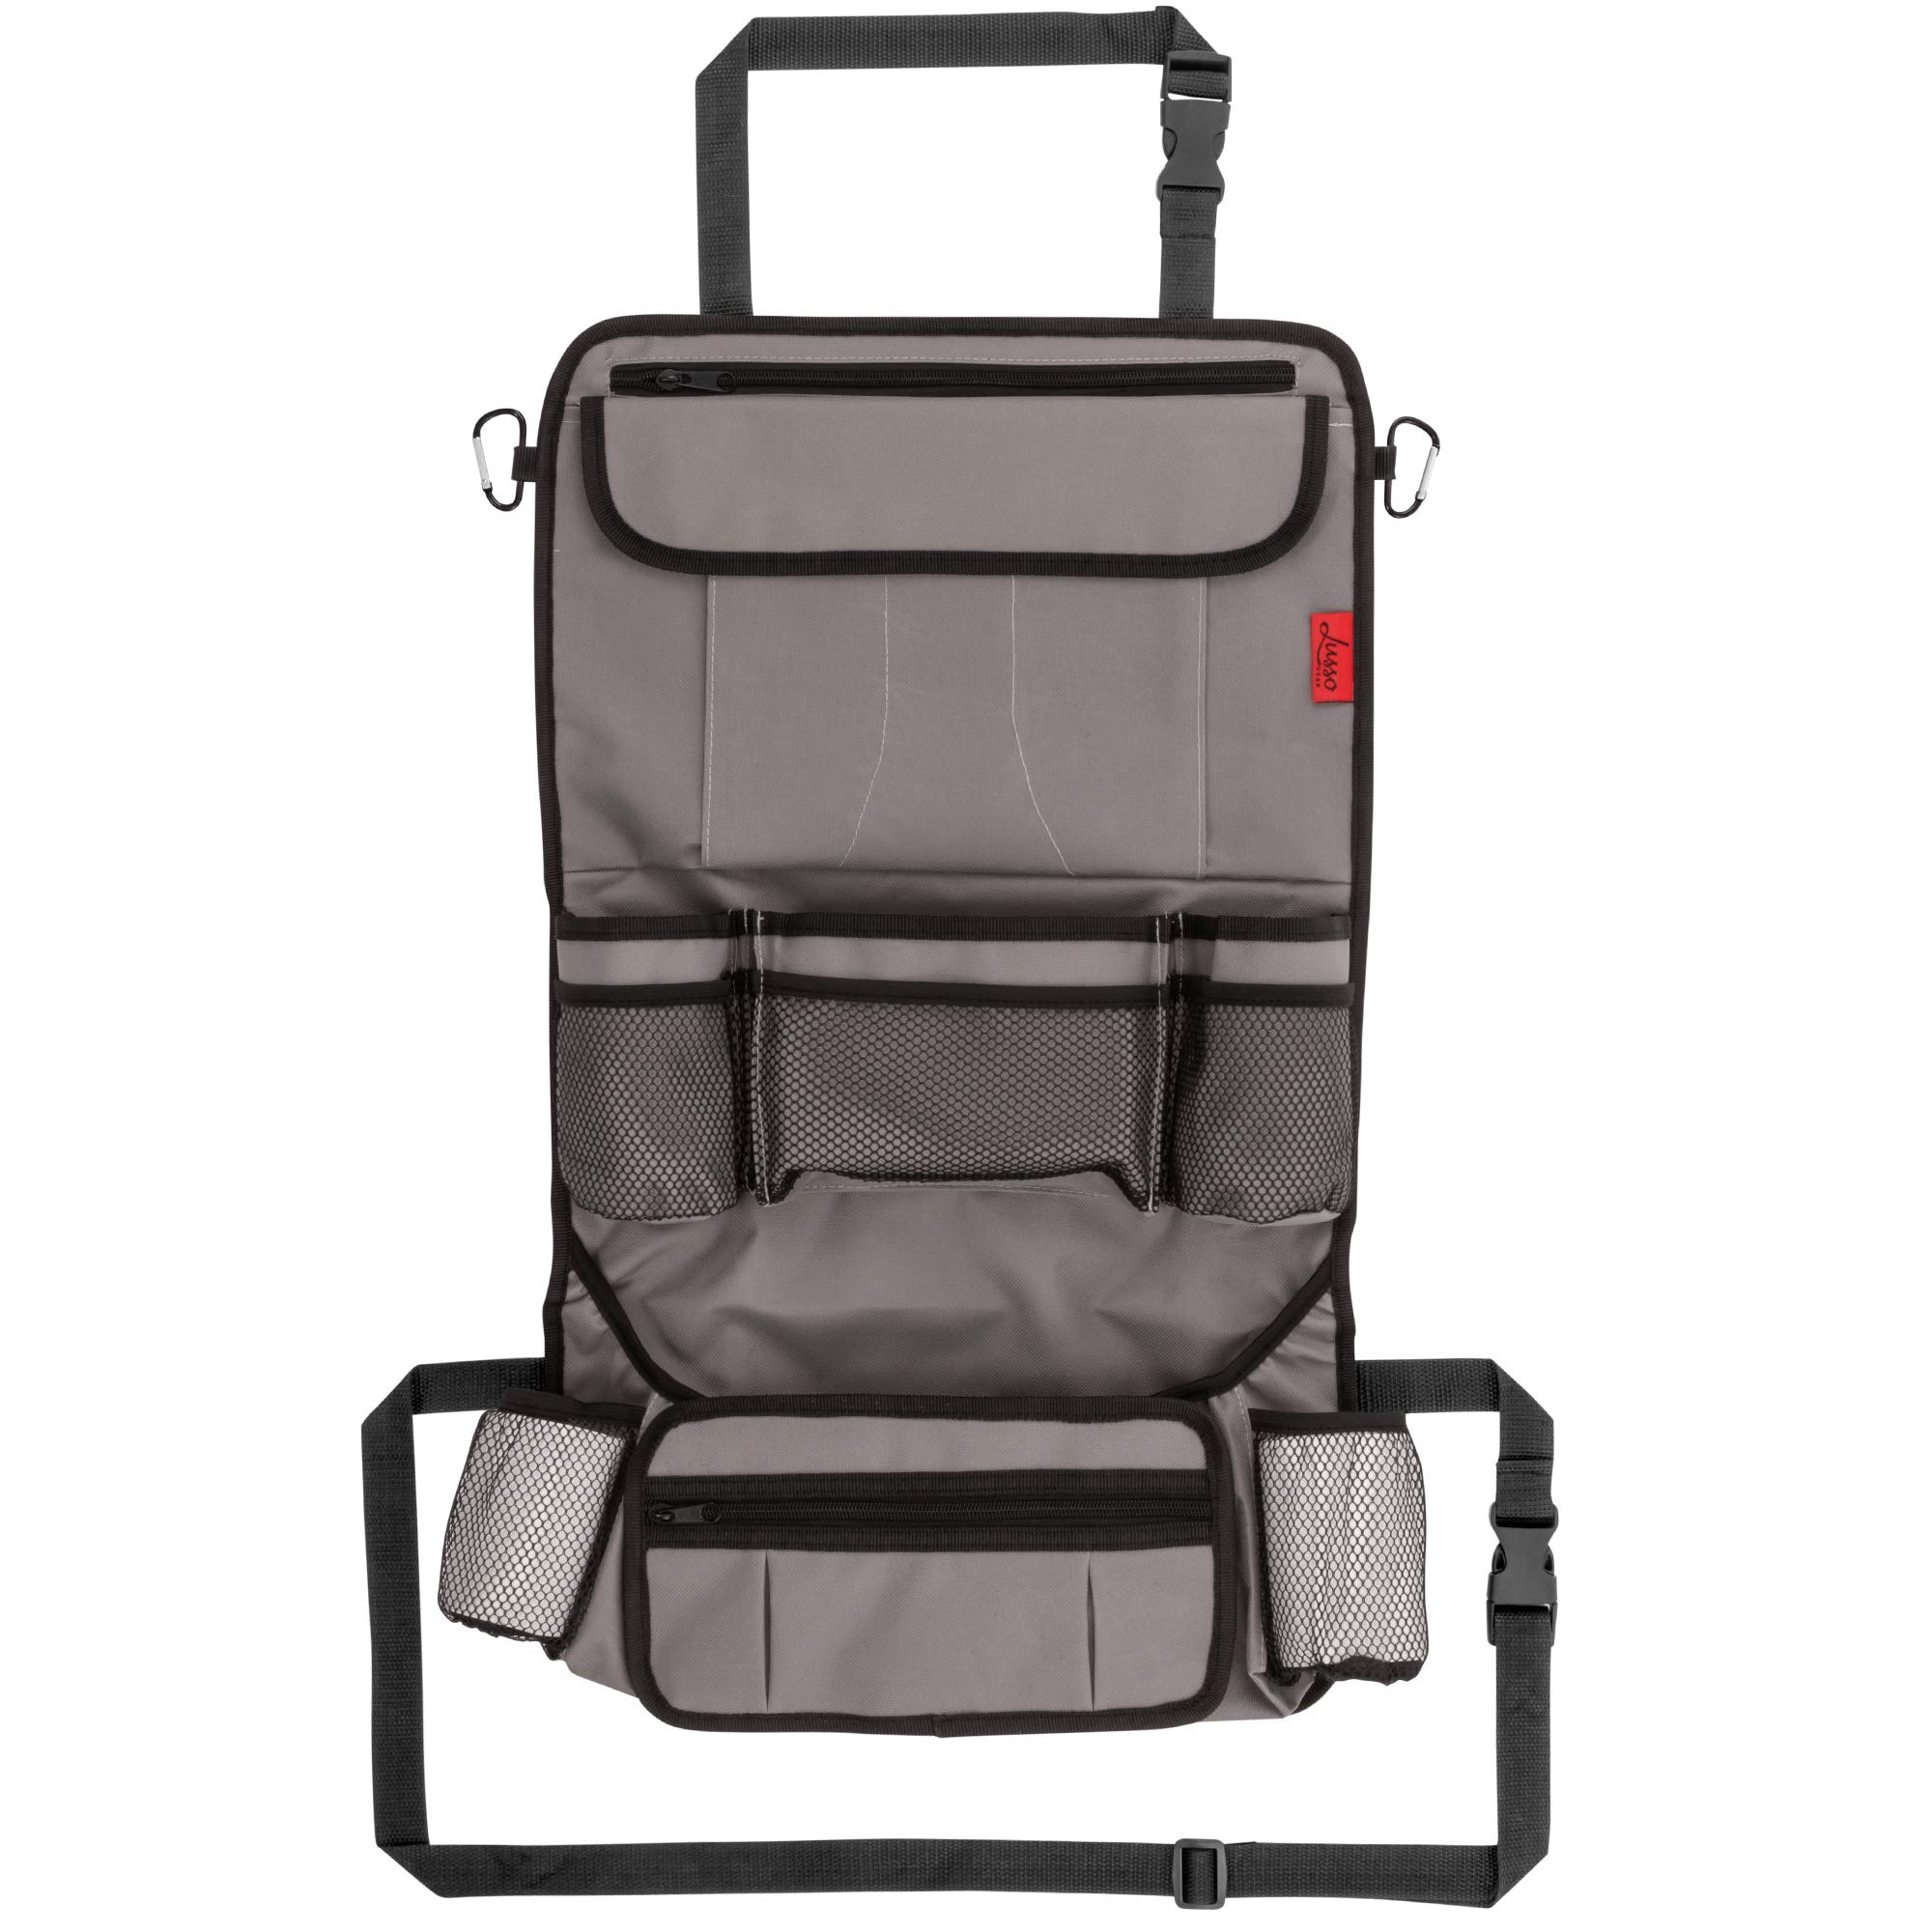 Car Back Seat Organizer with Larger Protection & Storage - 12 Compartments Including iPad Holder, Reinforced Corners to Prevent Sag, Eco Friendly Materials - Great Travel Accessory for Kids by Lusso Gear